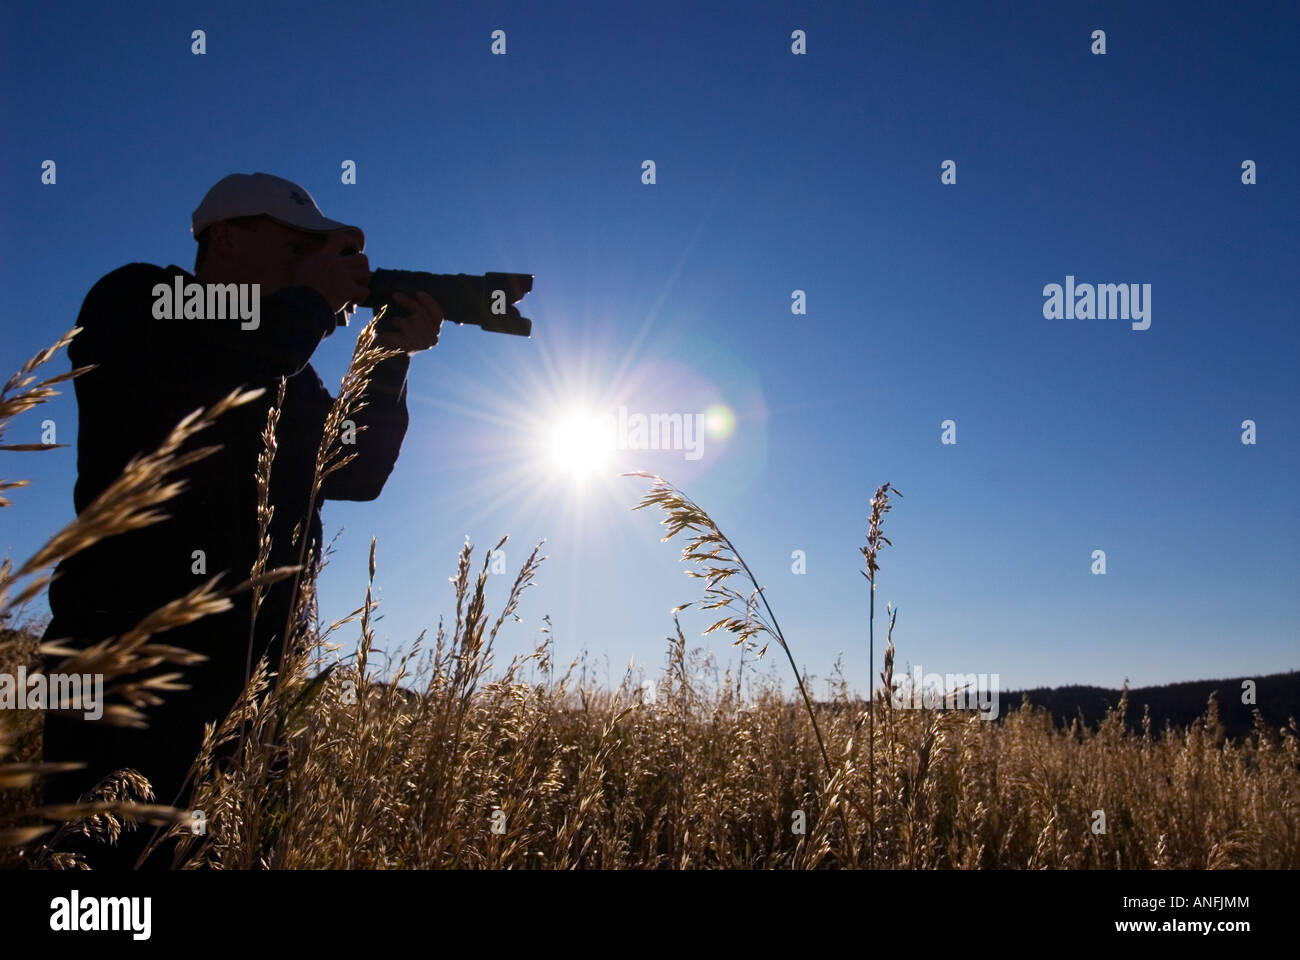 Silhouette of photographer, British Columbia, Canada. - Stock Image